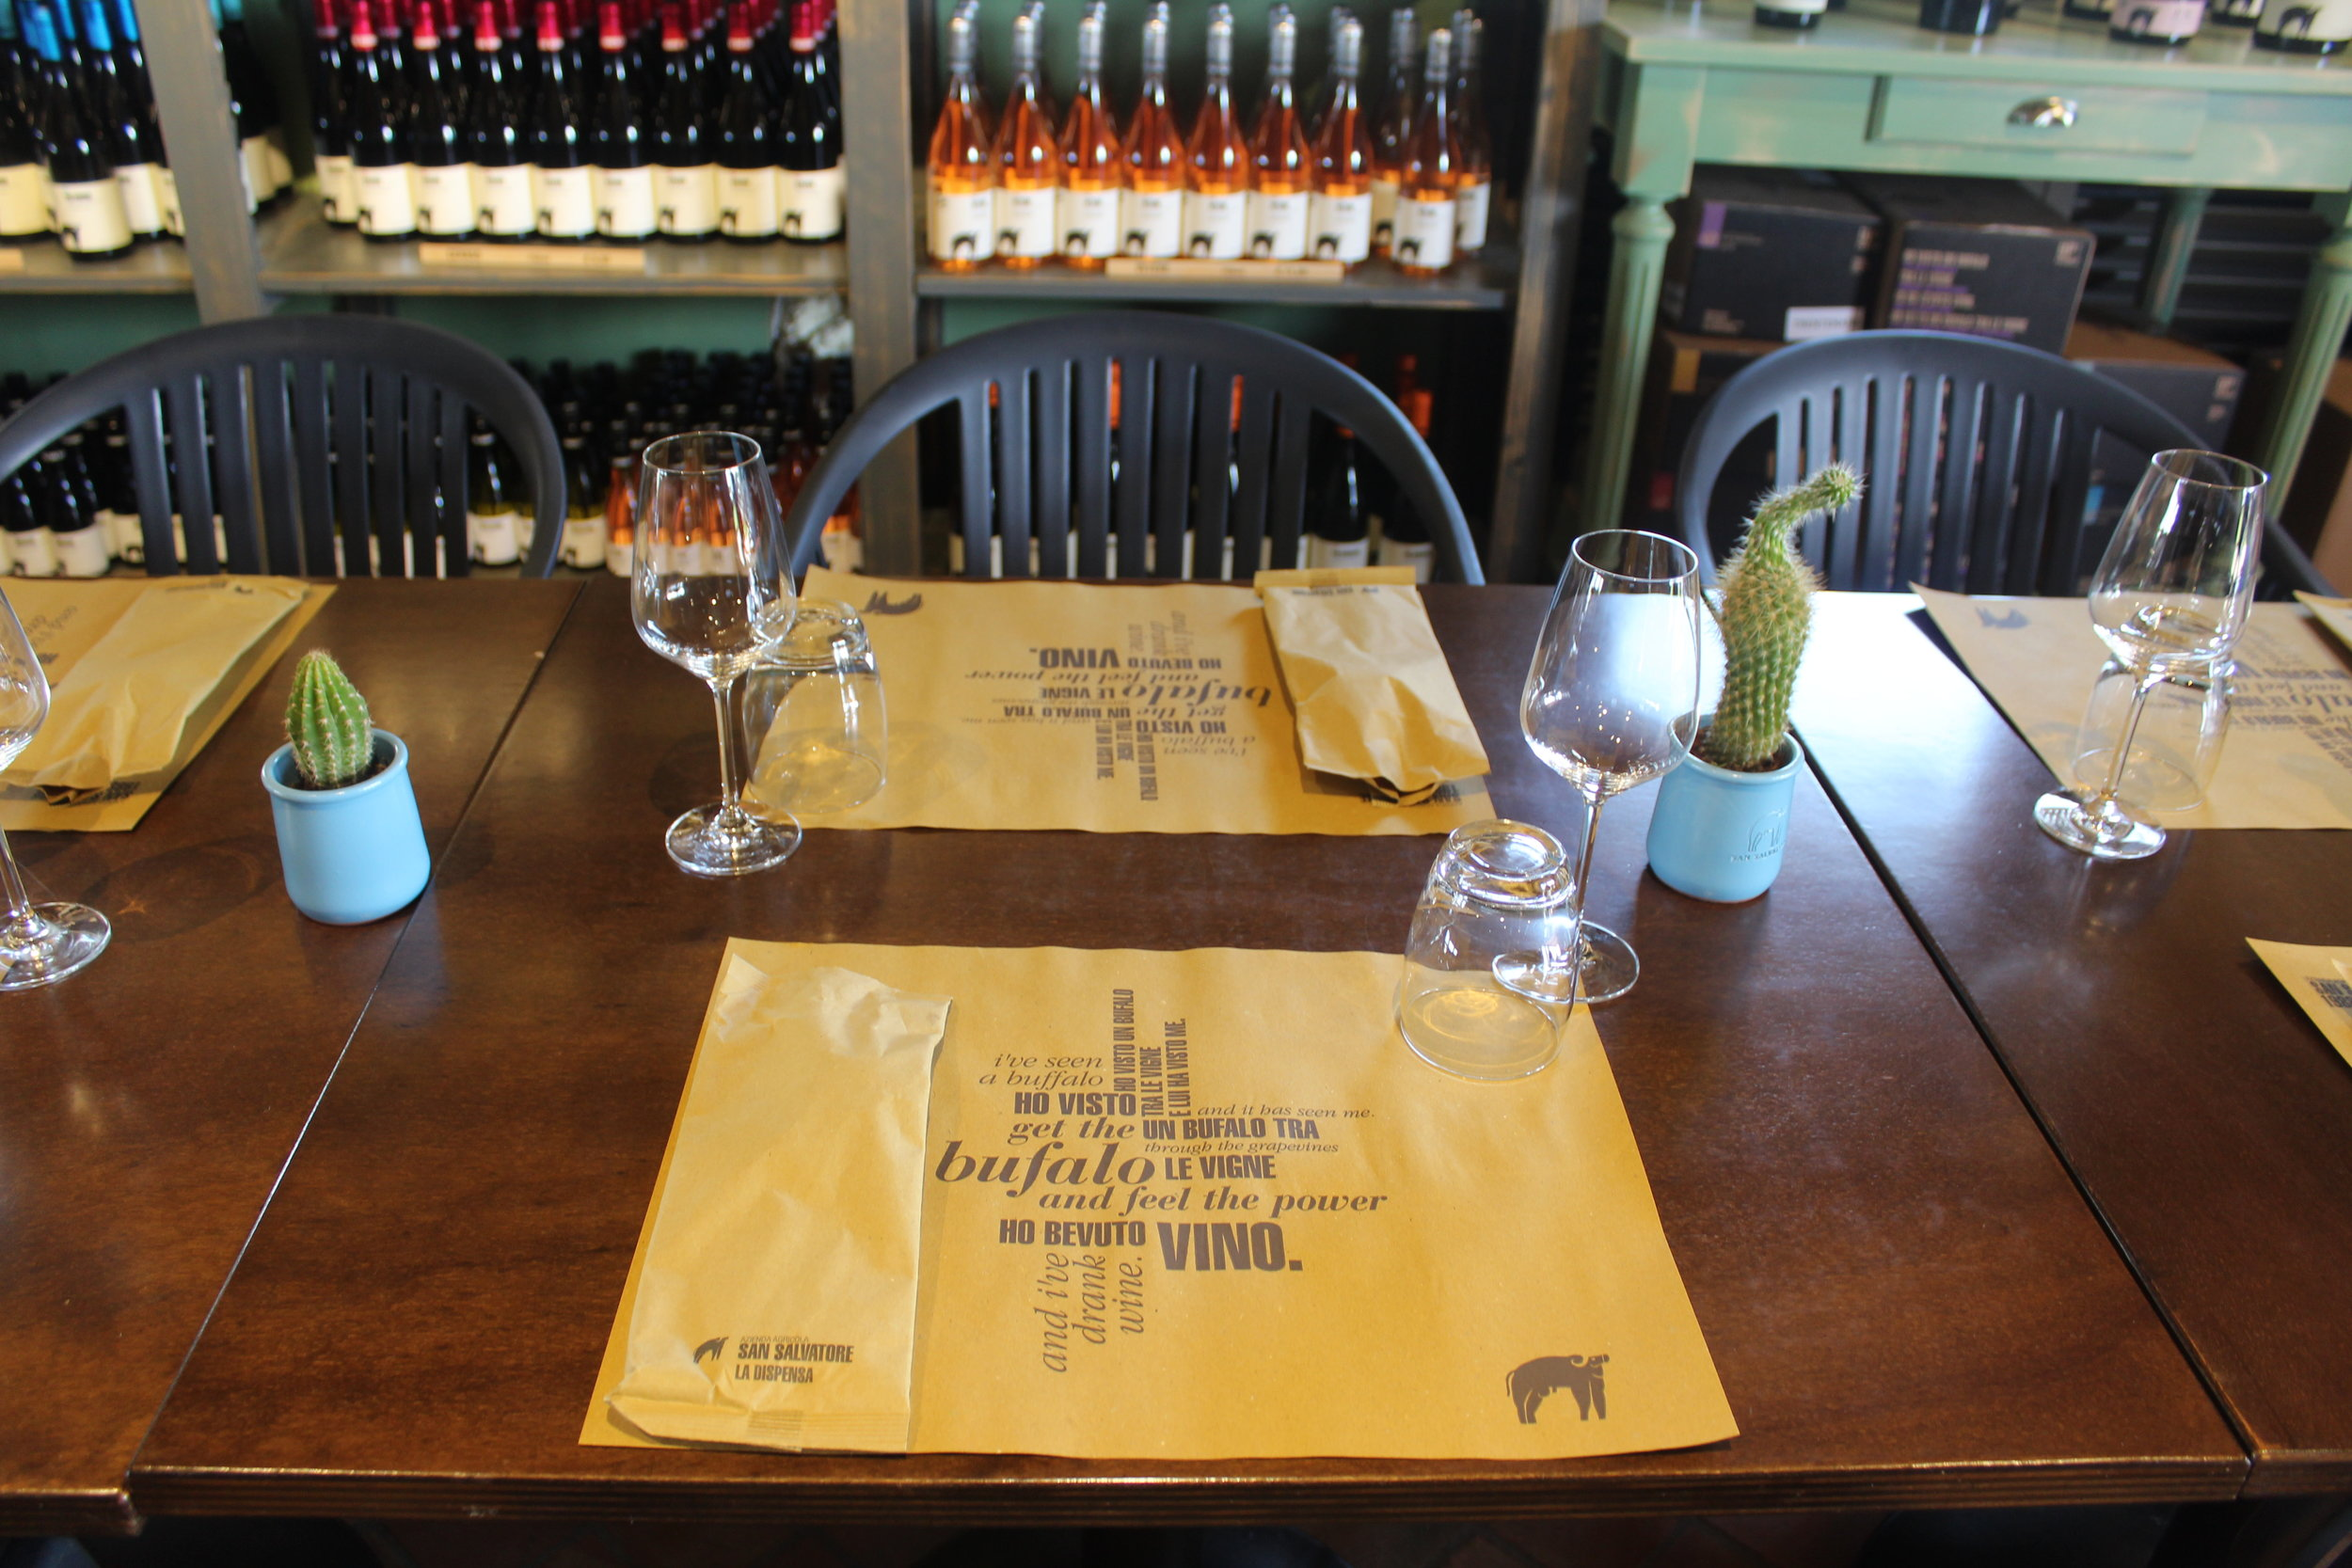 Lunch at San Salvatore includes all their own organic and biodynamic olive oil, produce, herbs and wine.